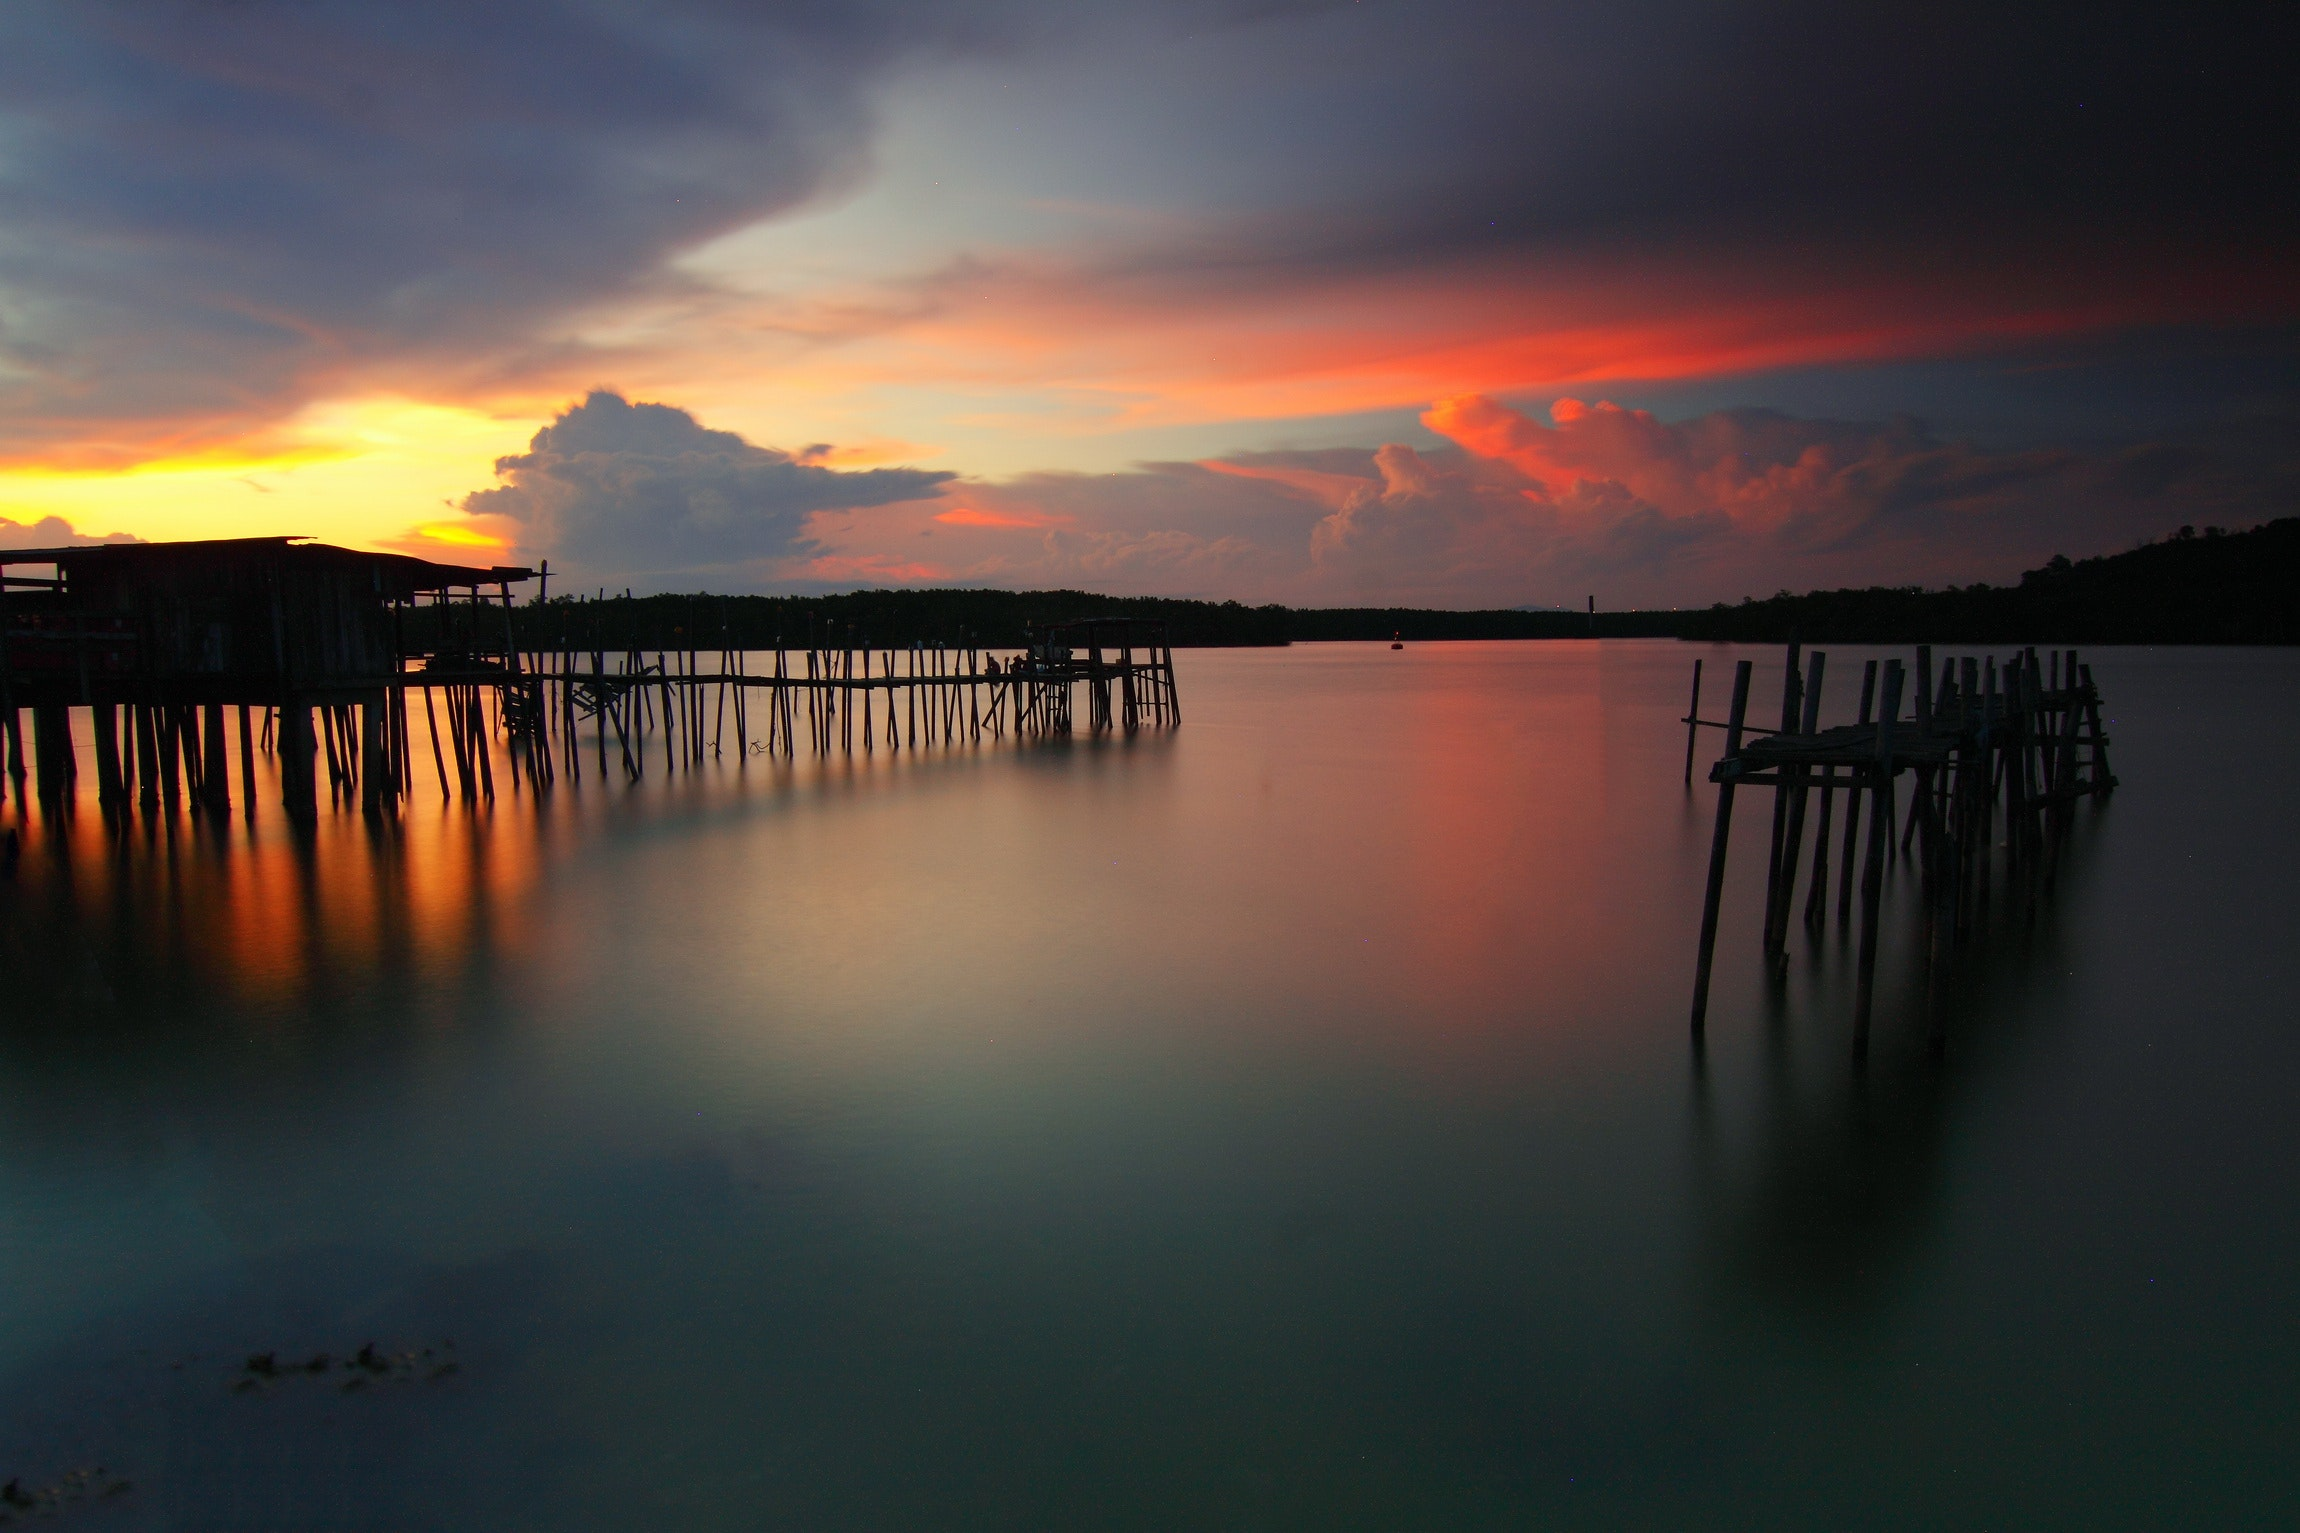 Wooden boardwalk on body of water during dawn photo